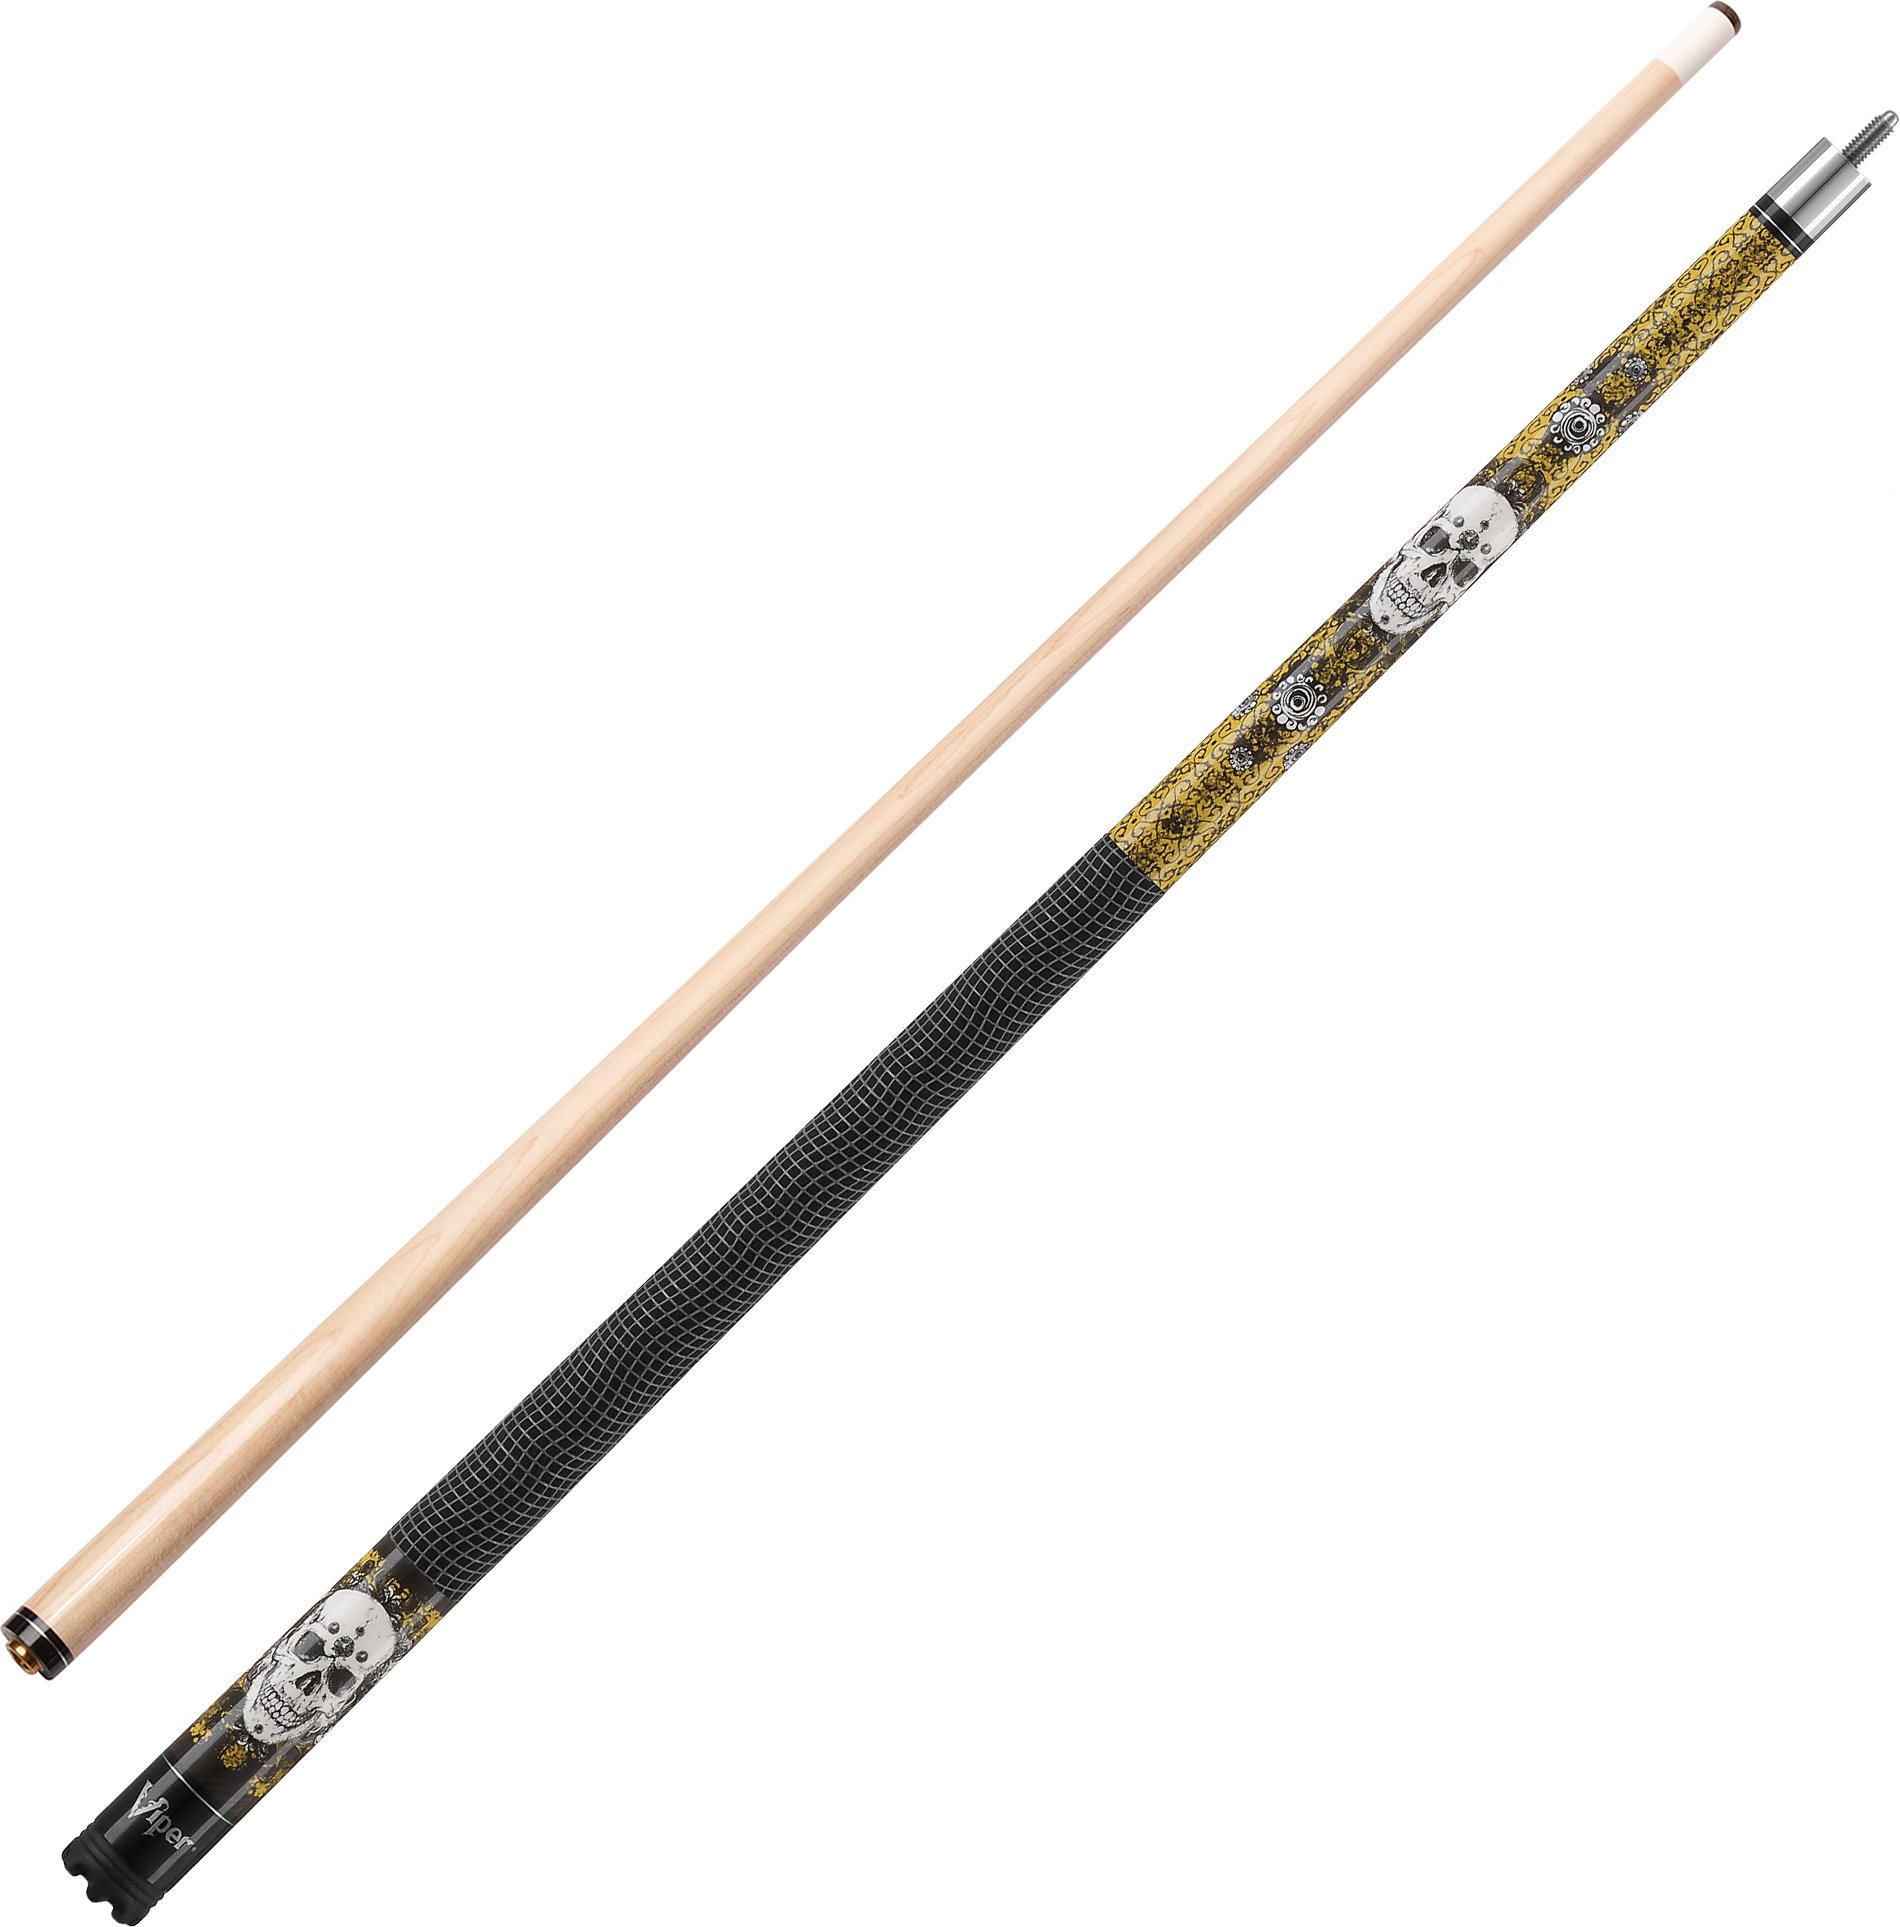 Viper Revolution 58'' 2-Piece Billiard/Pool Cue, Relic, 19 Ounce by Viper by GLD Products